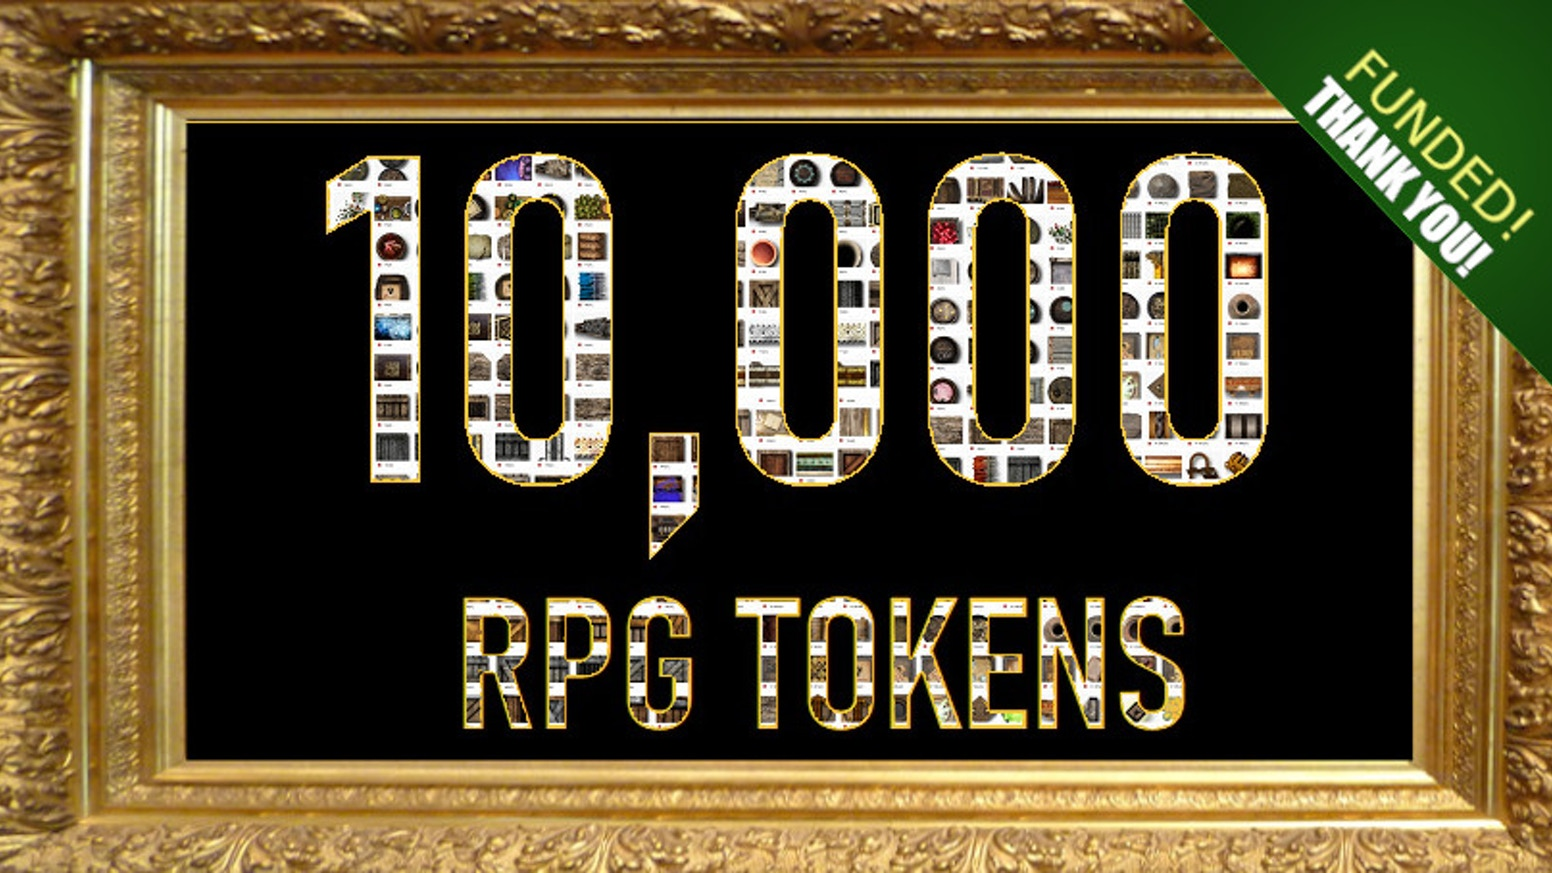 TEN THOUSAND TOKENS in digital format to suit your RPG / VTT table-top games.